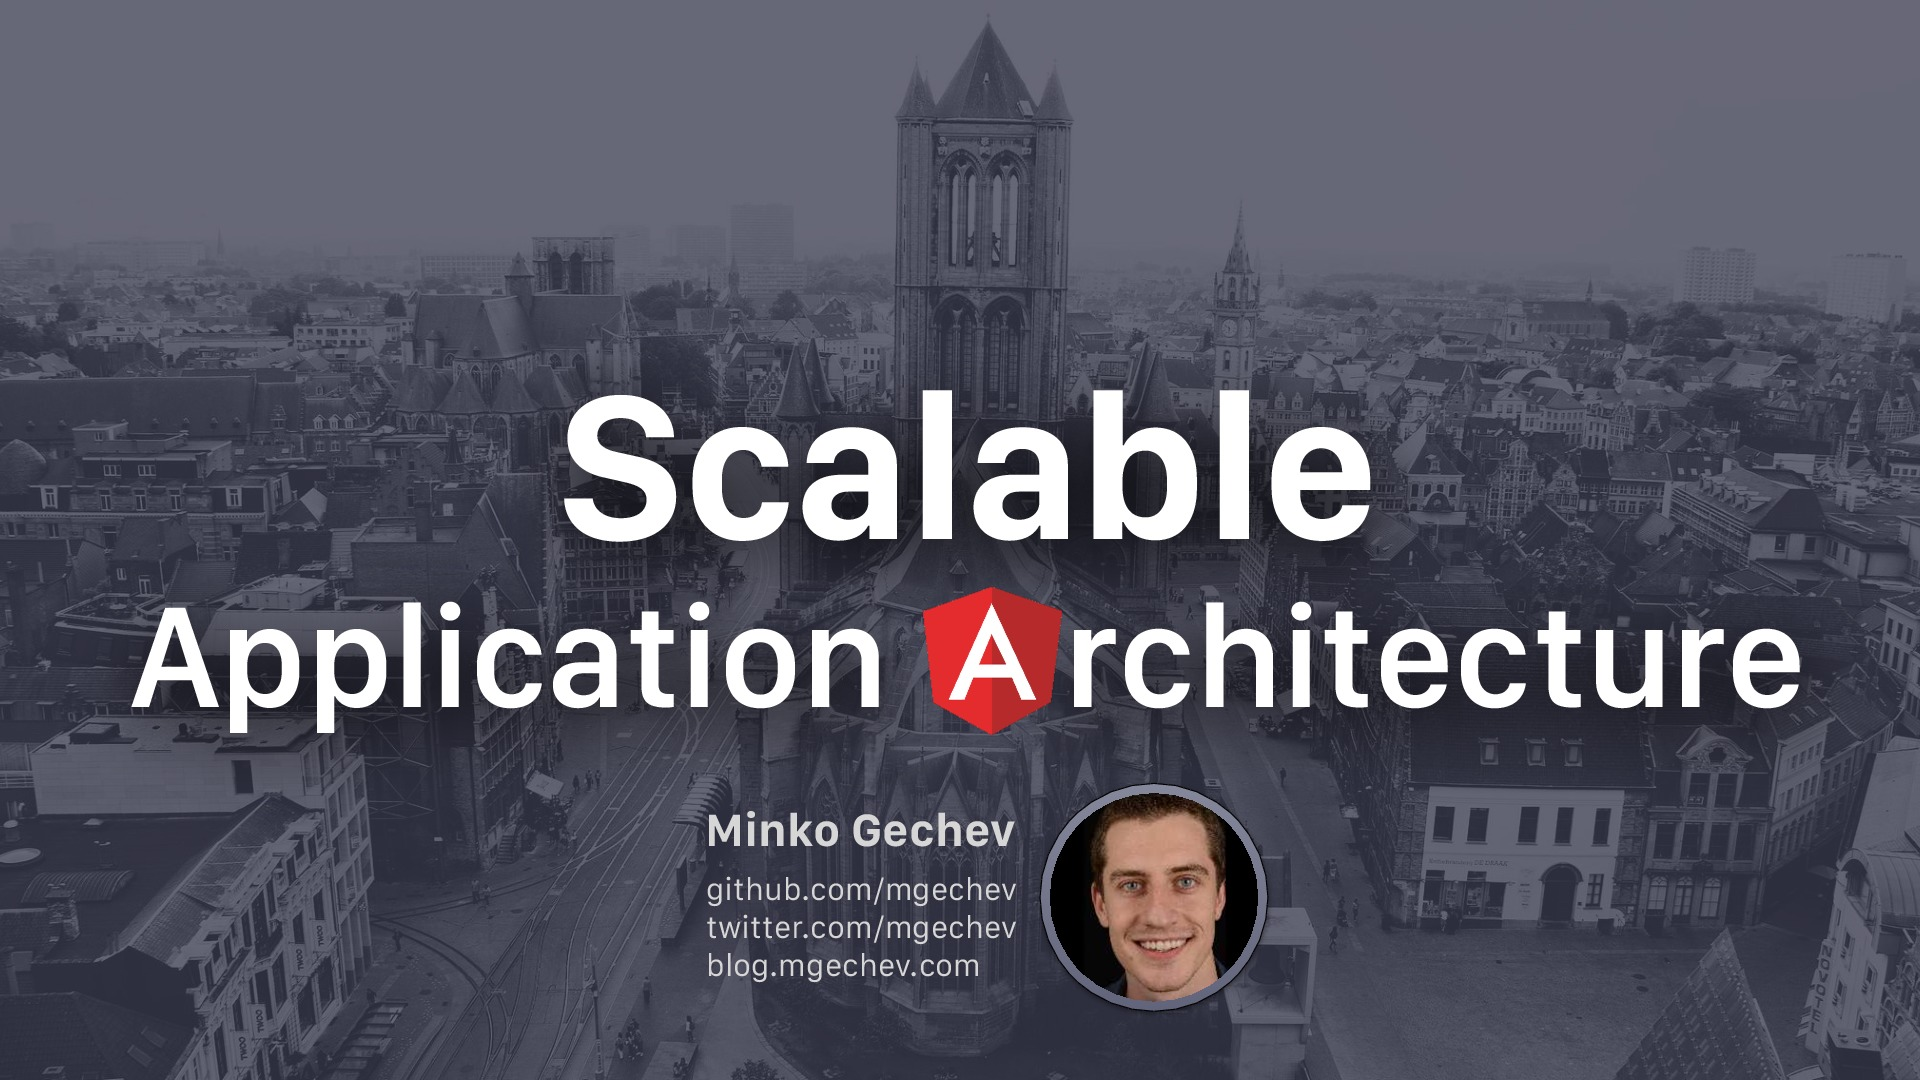 Scalable Application Architecture